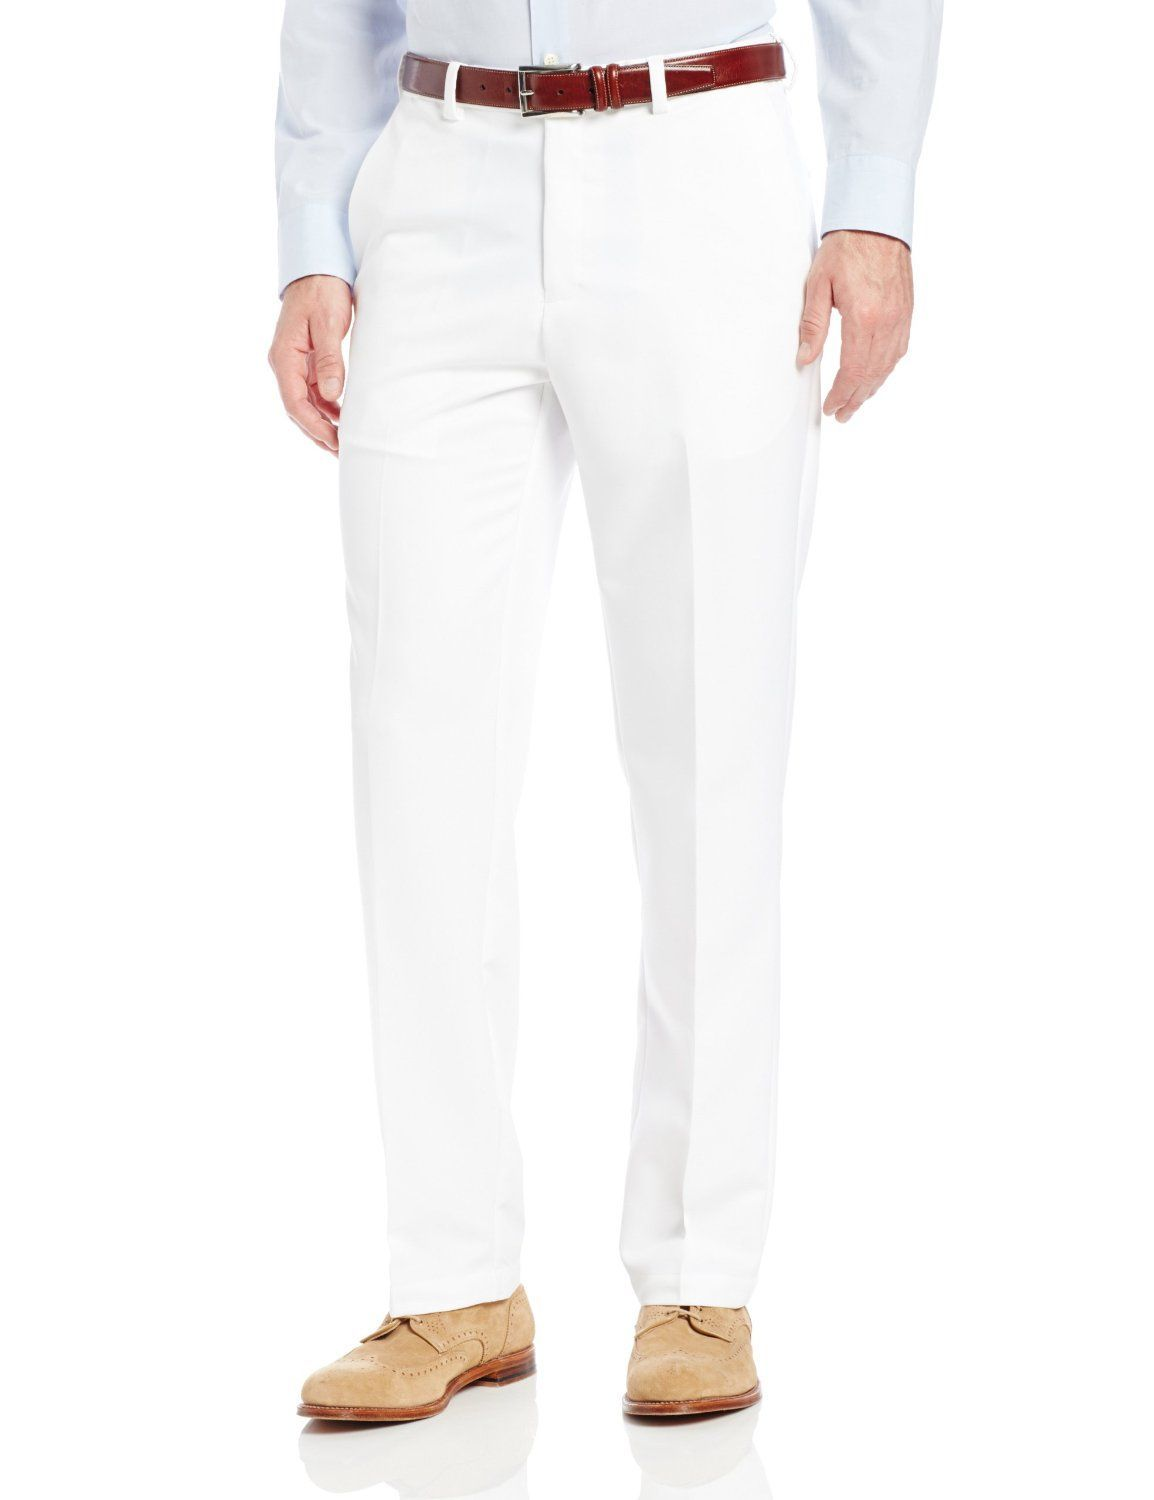 Images of White Dress Pants For Men - Kianes